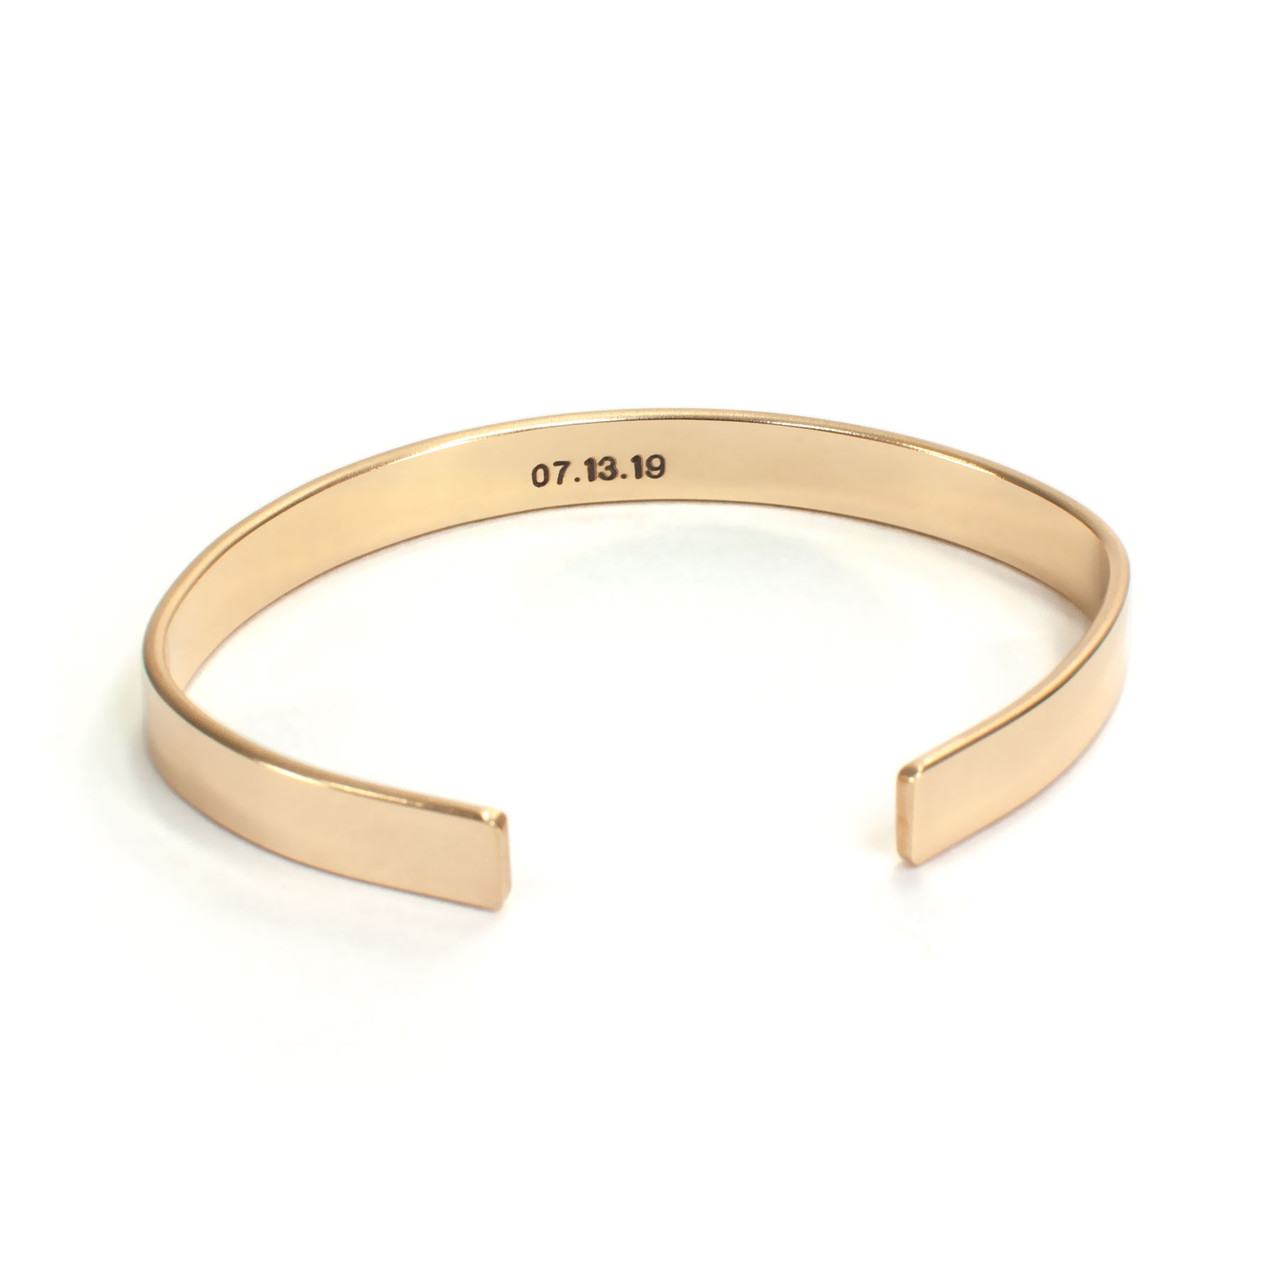 Gold handwriting cuff bracelet , shown with optional stamping on the back/inside